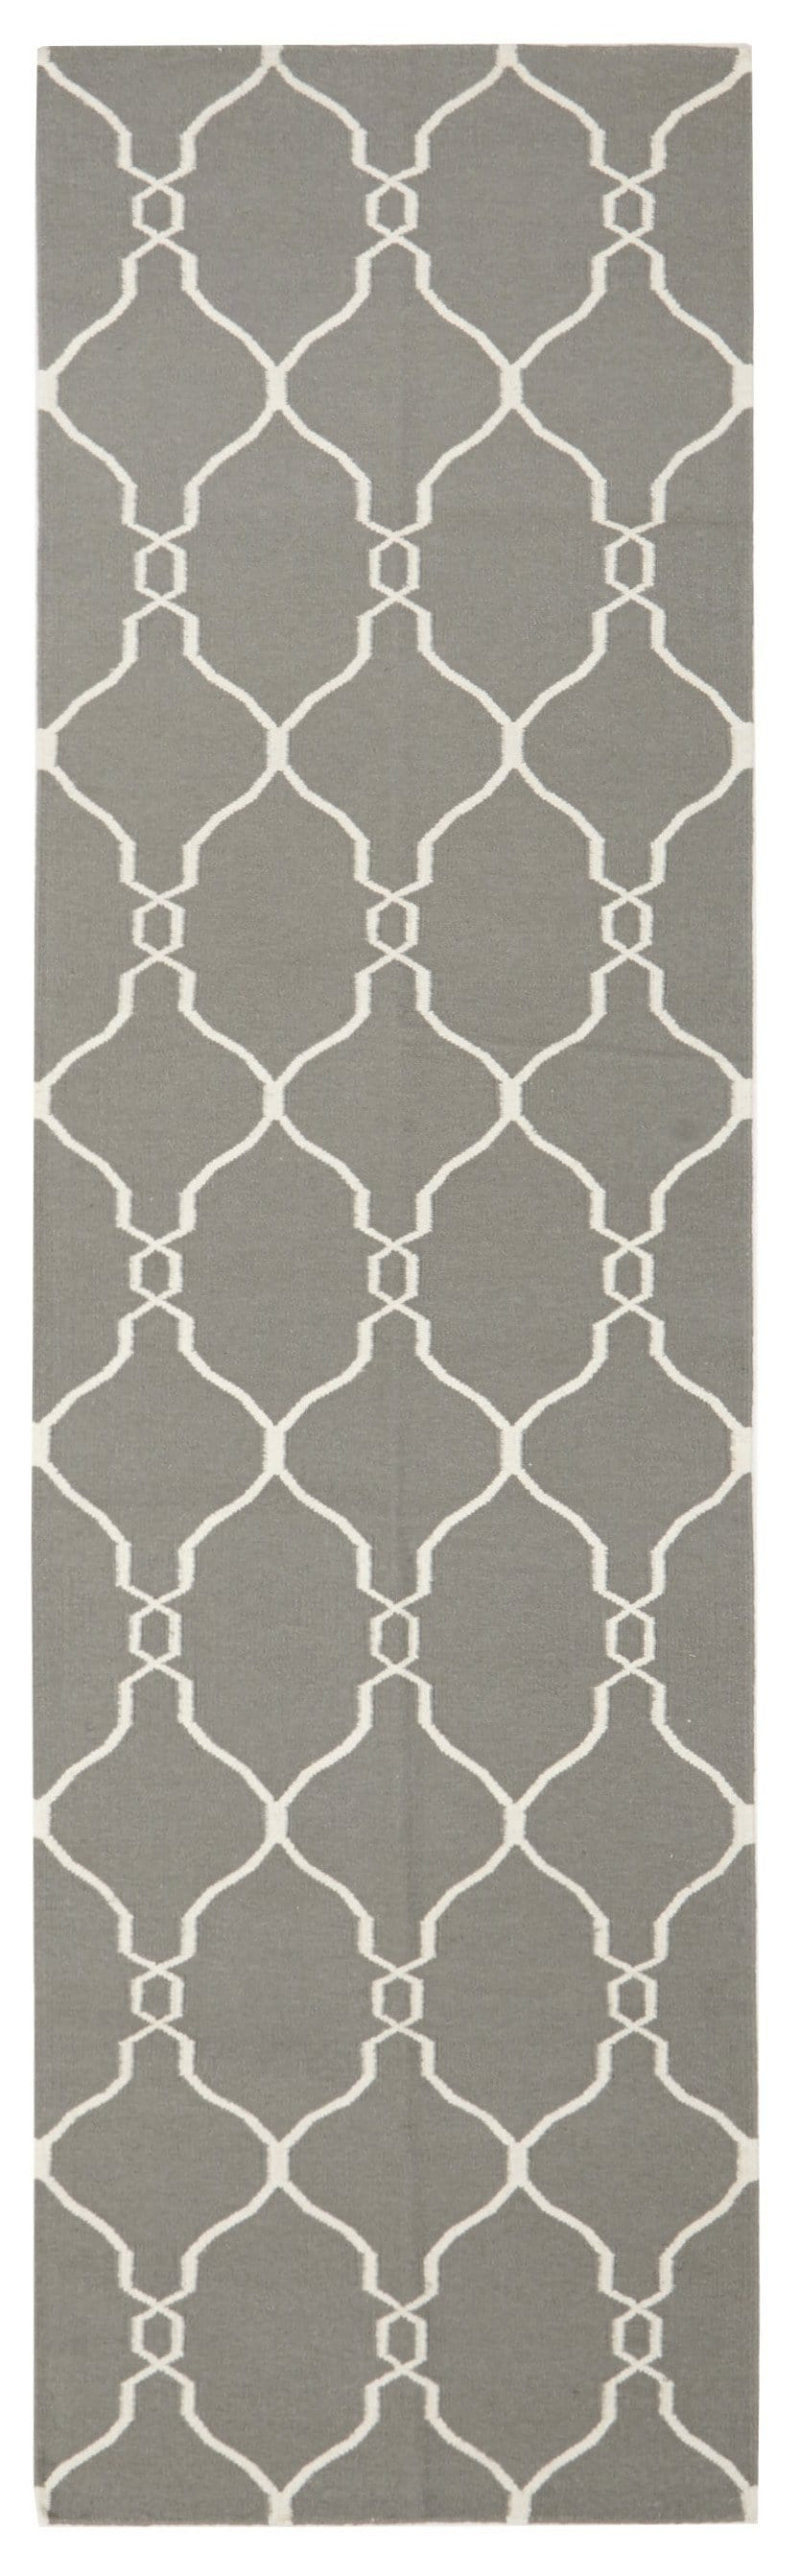 Chemillé Grey Lattice Wool Runner Rug